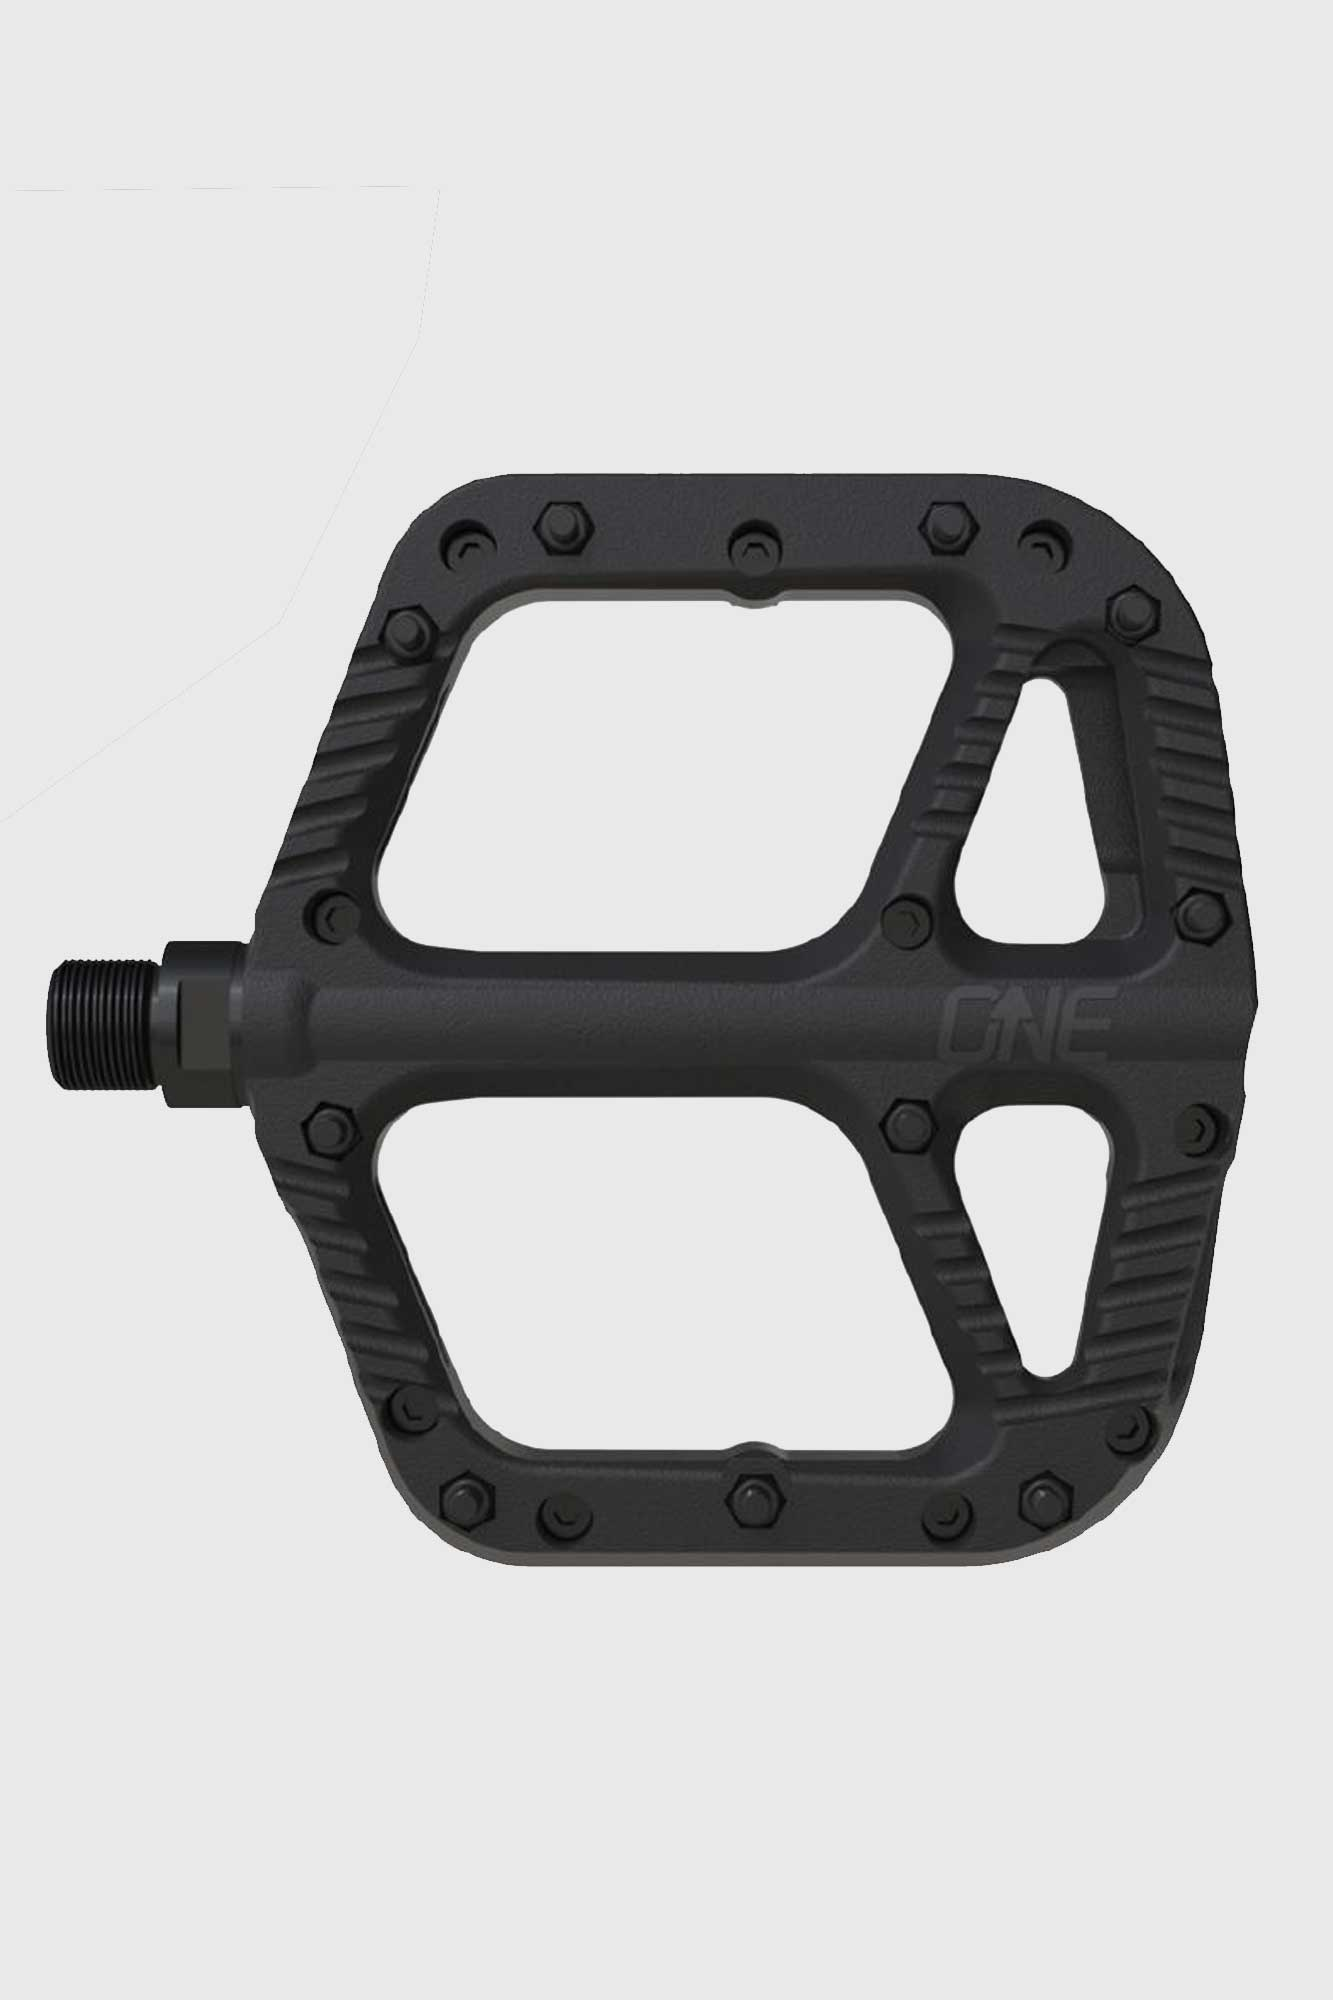 One Up Components Composite Pedal - Black